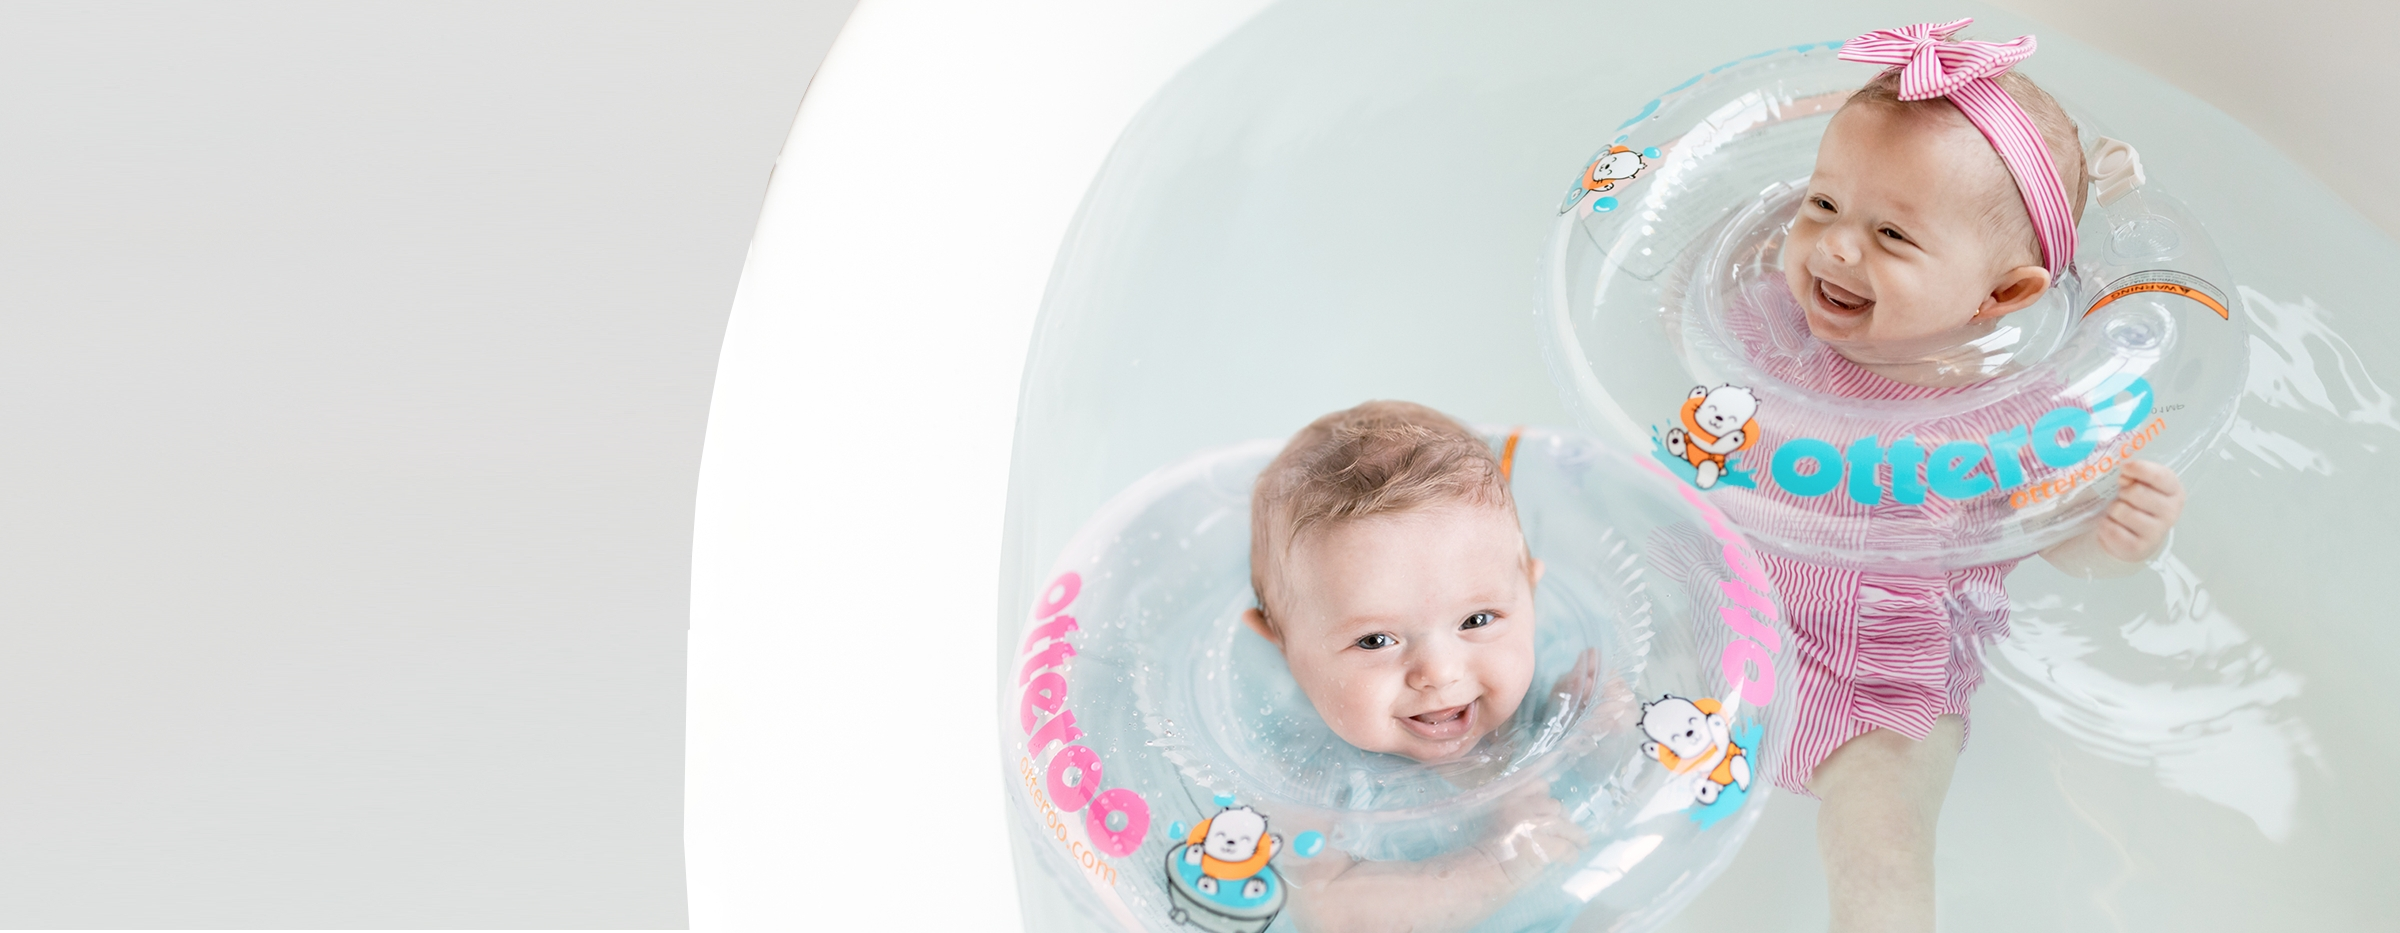 Baby Neck Float | Otteroo Bath And Pool Toy For Infants